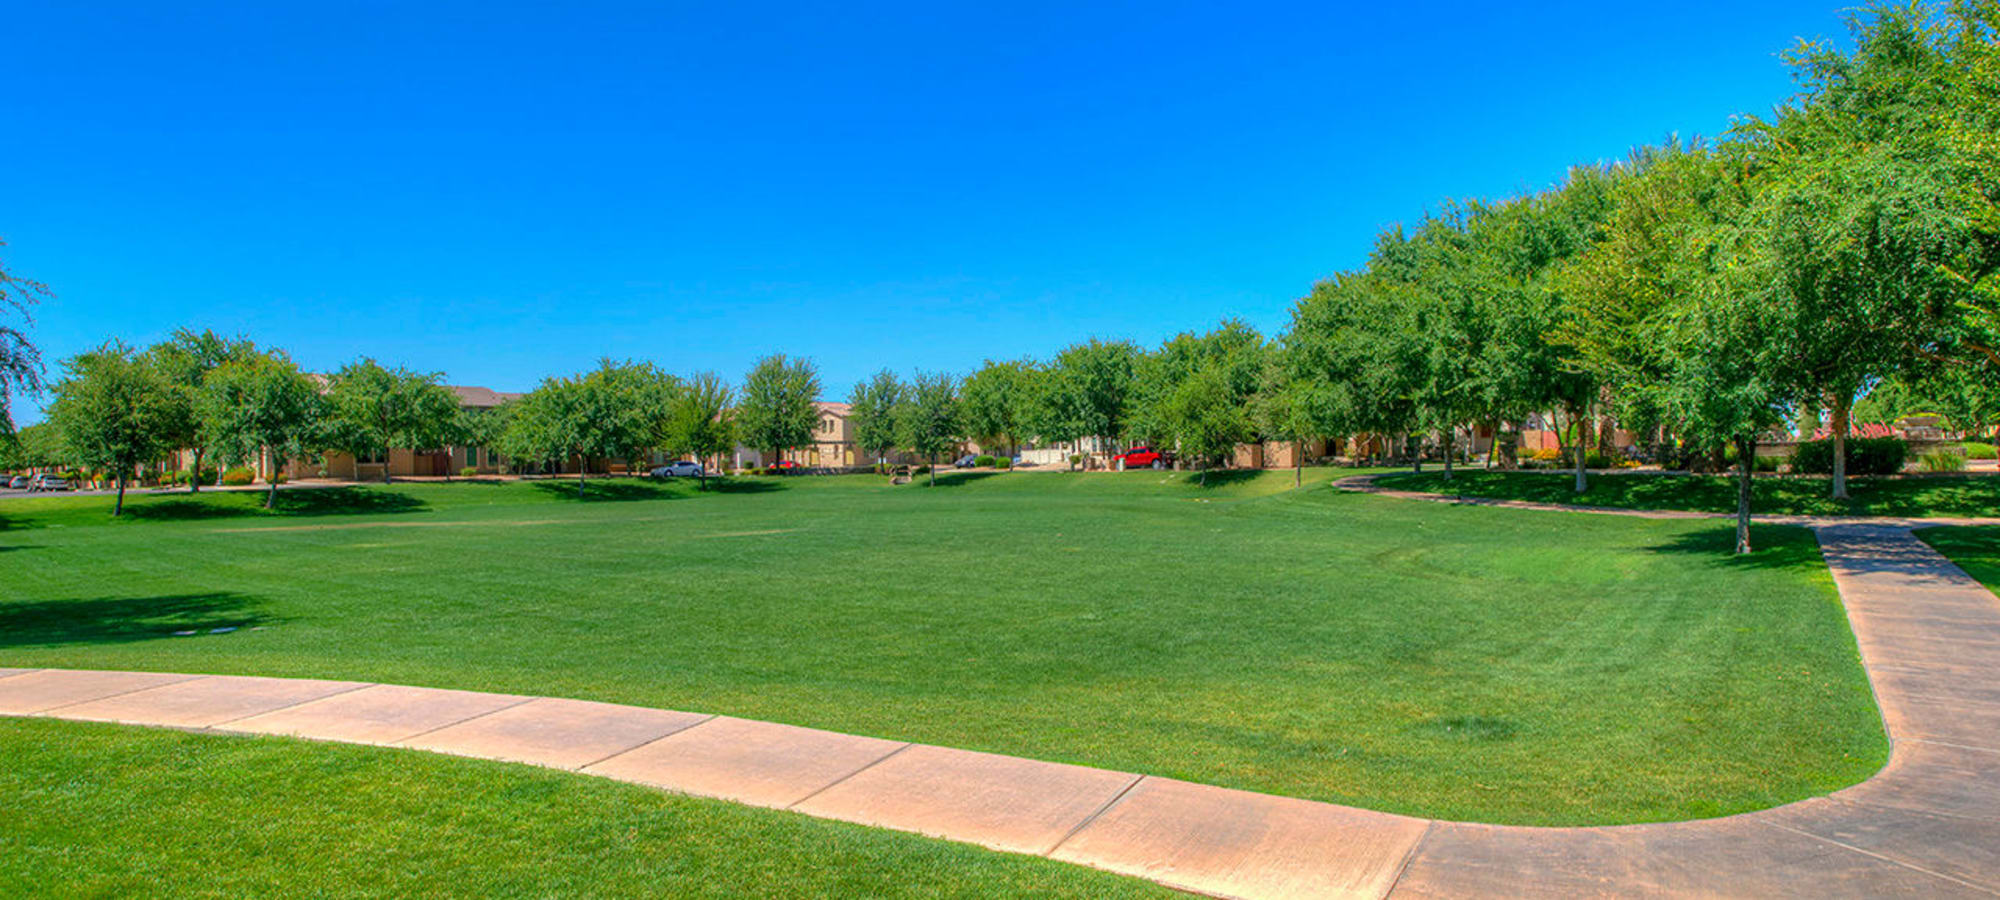 Beautiful grass fields at BB Living at Higley Park in Gilbert, Arizona